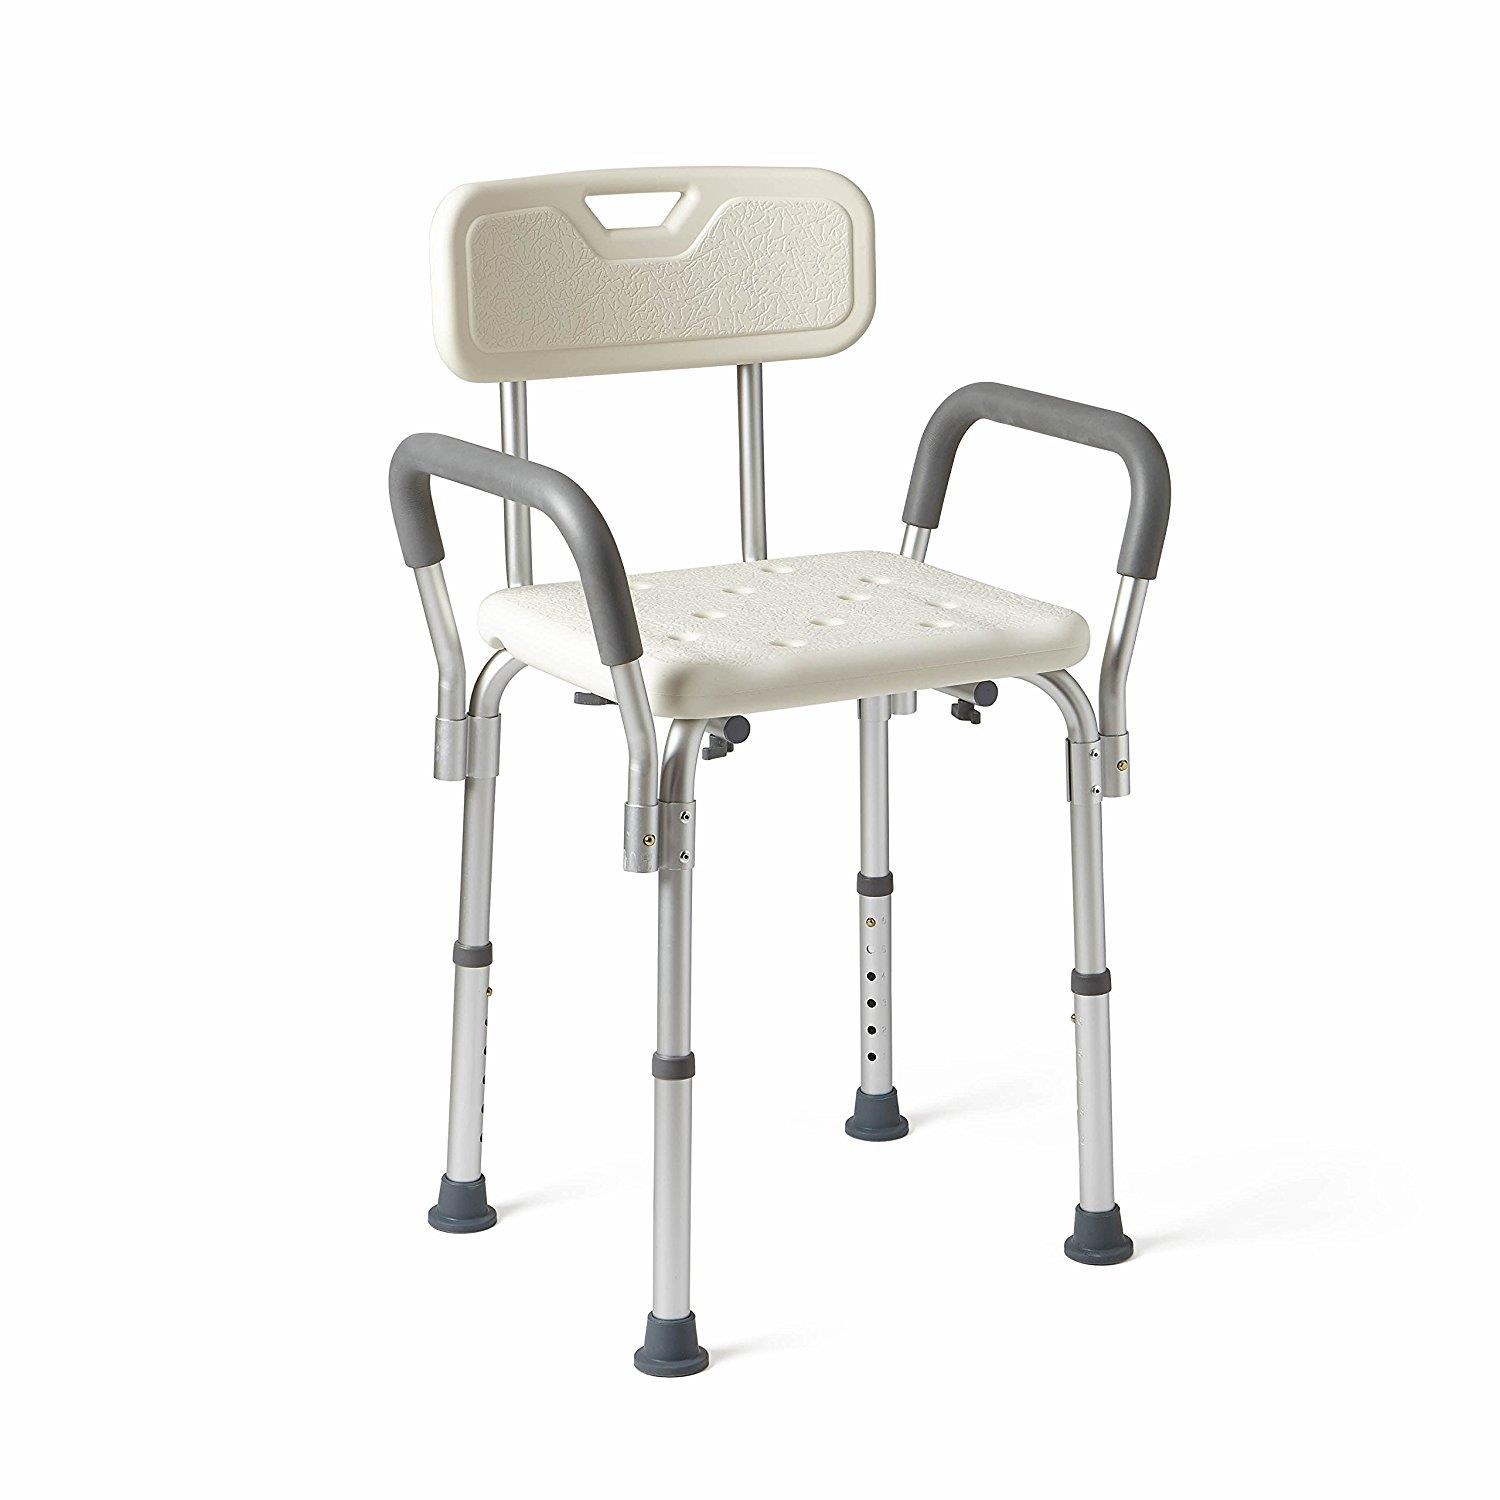 Bath Chair Lift Ktaxon Medical Tool Free Assembly Spa Bathtub Shower Lift Chair Portable Bath Seat Adjustable Shower Bench White Bathtub Lift Chair With Arms